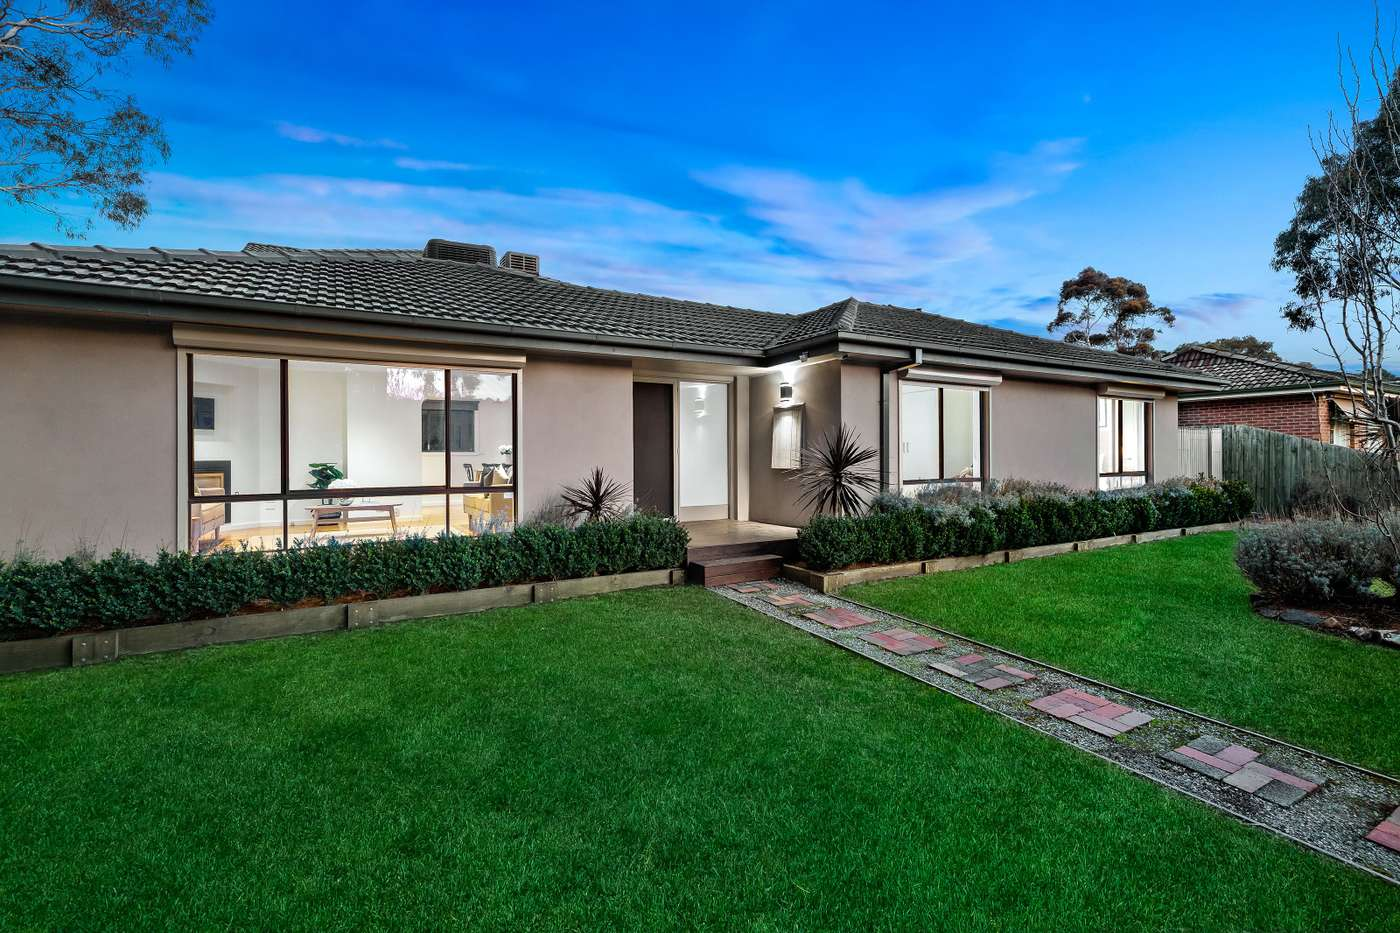 Main view of Homely house listing, 2 Elmstead Drive, Wheelers Hill, VIC 3150